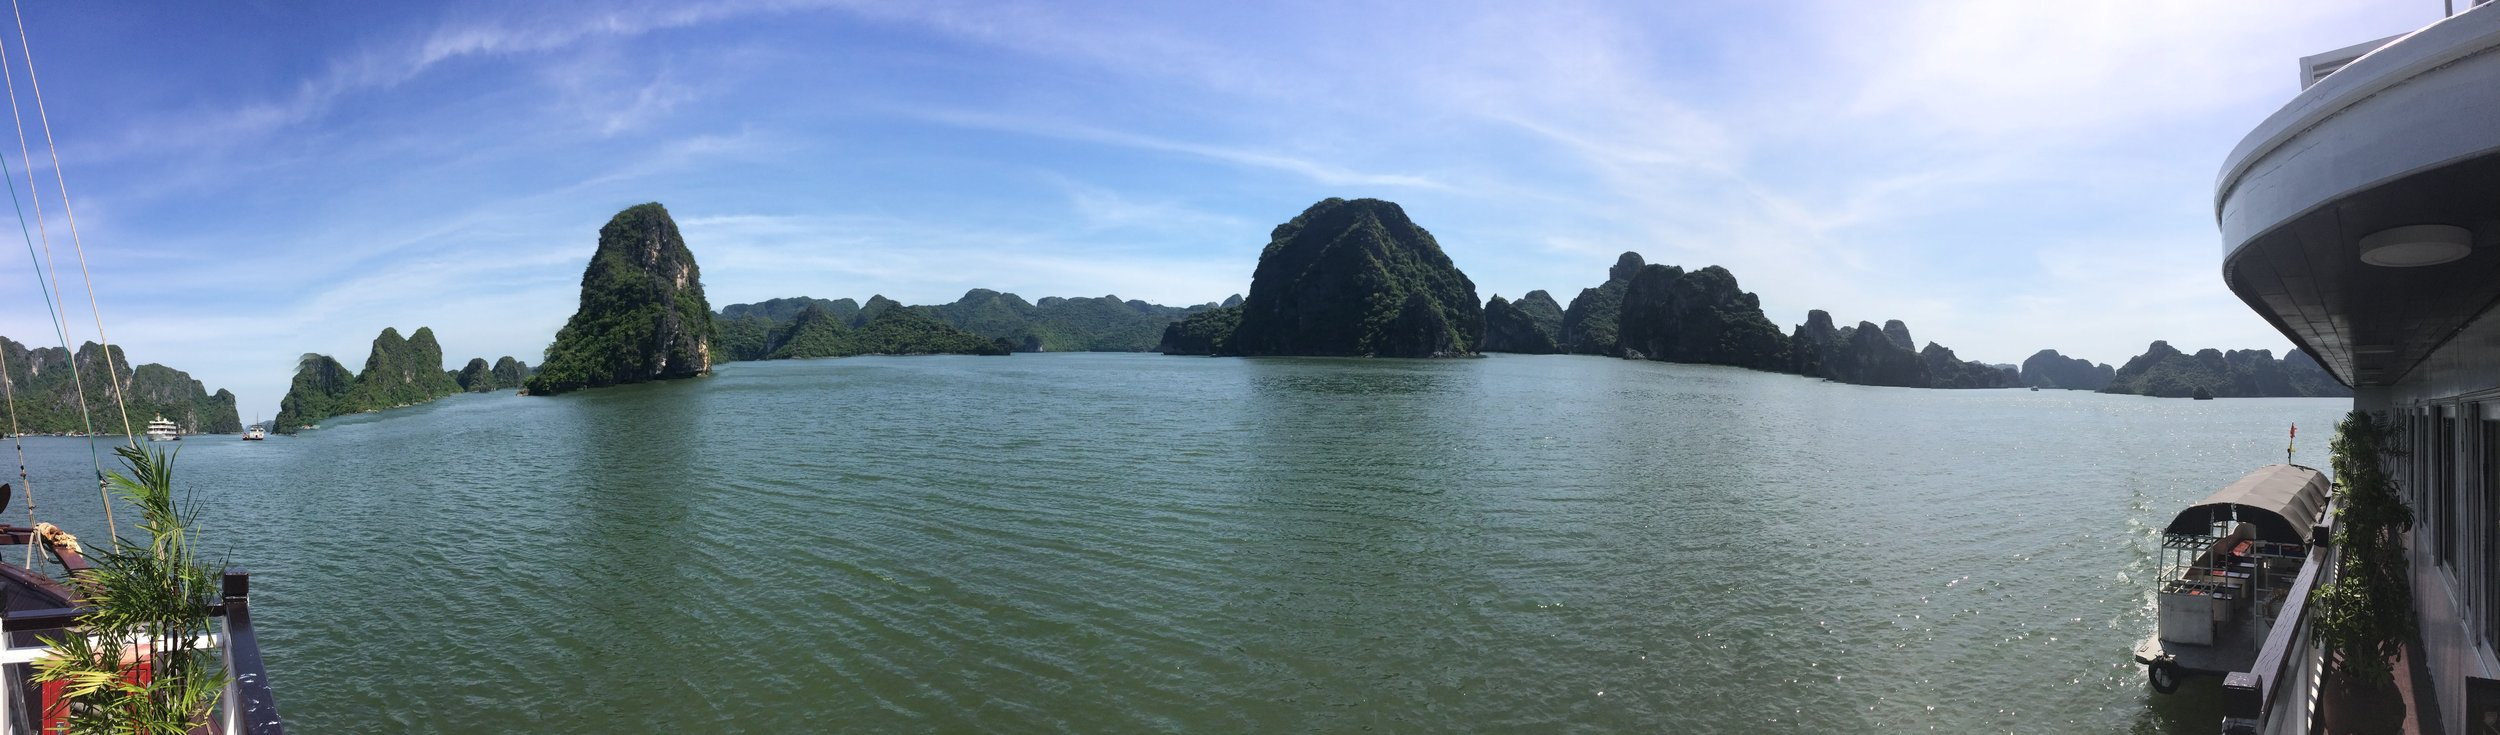 We took a day trip to Halong Bay